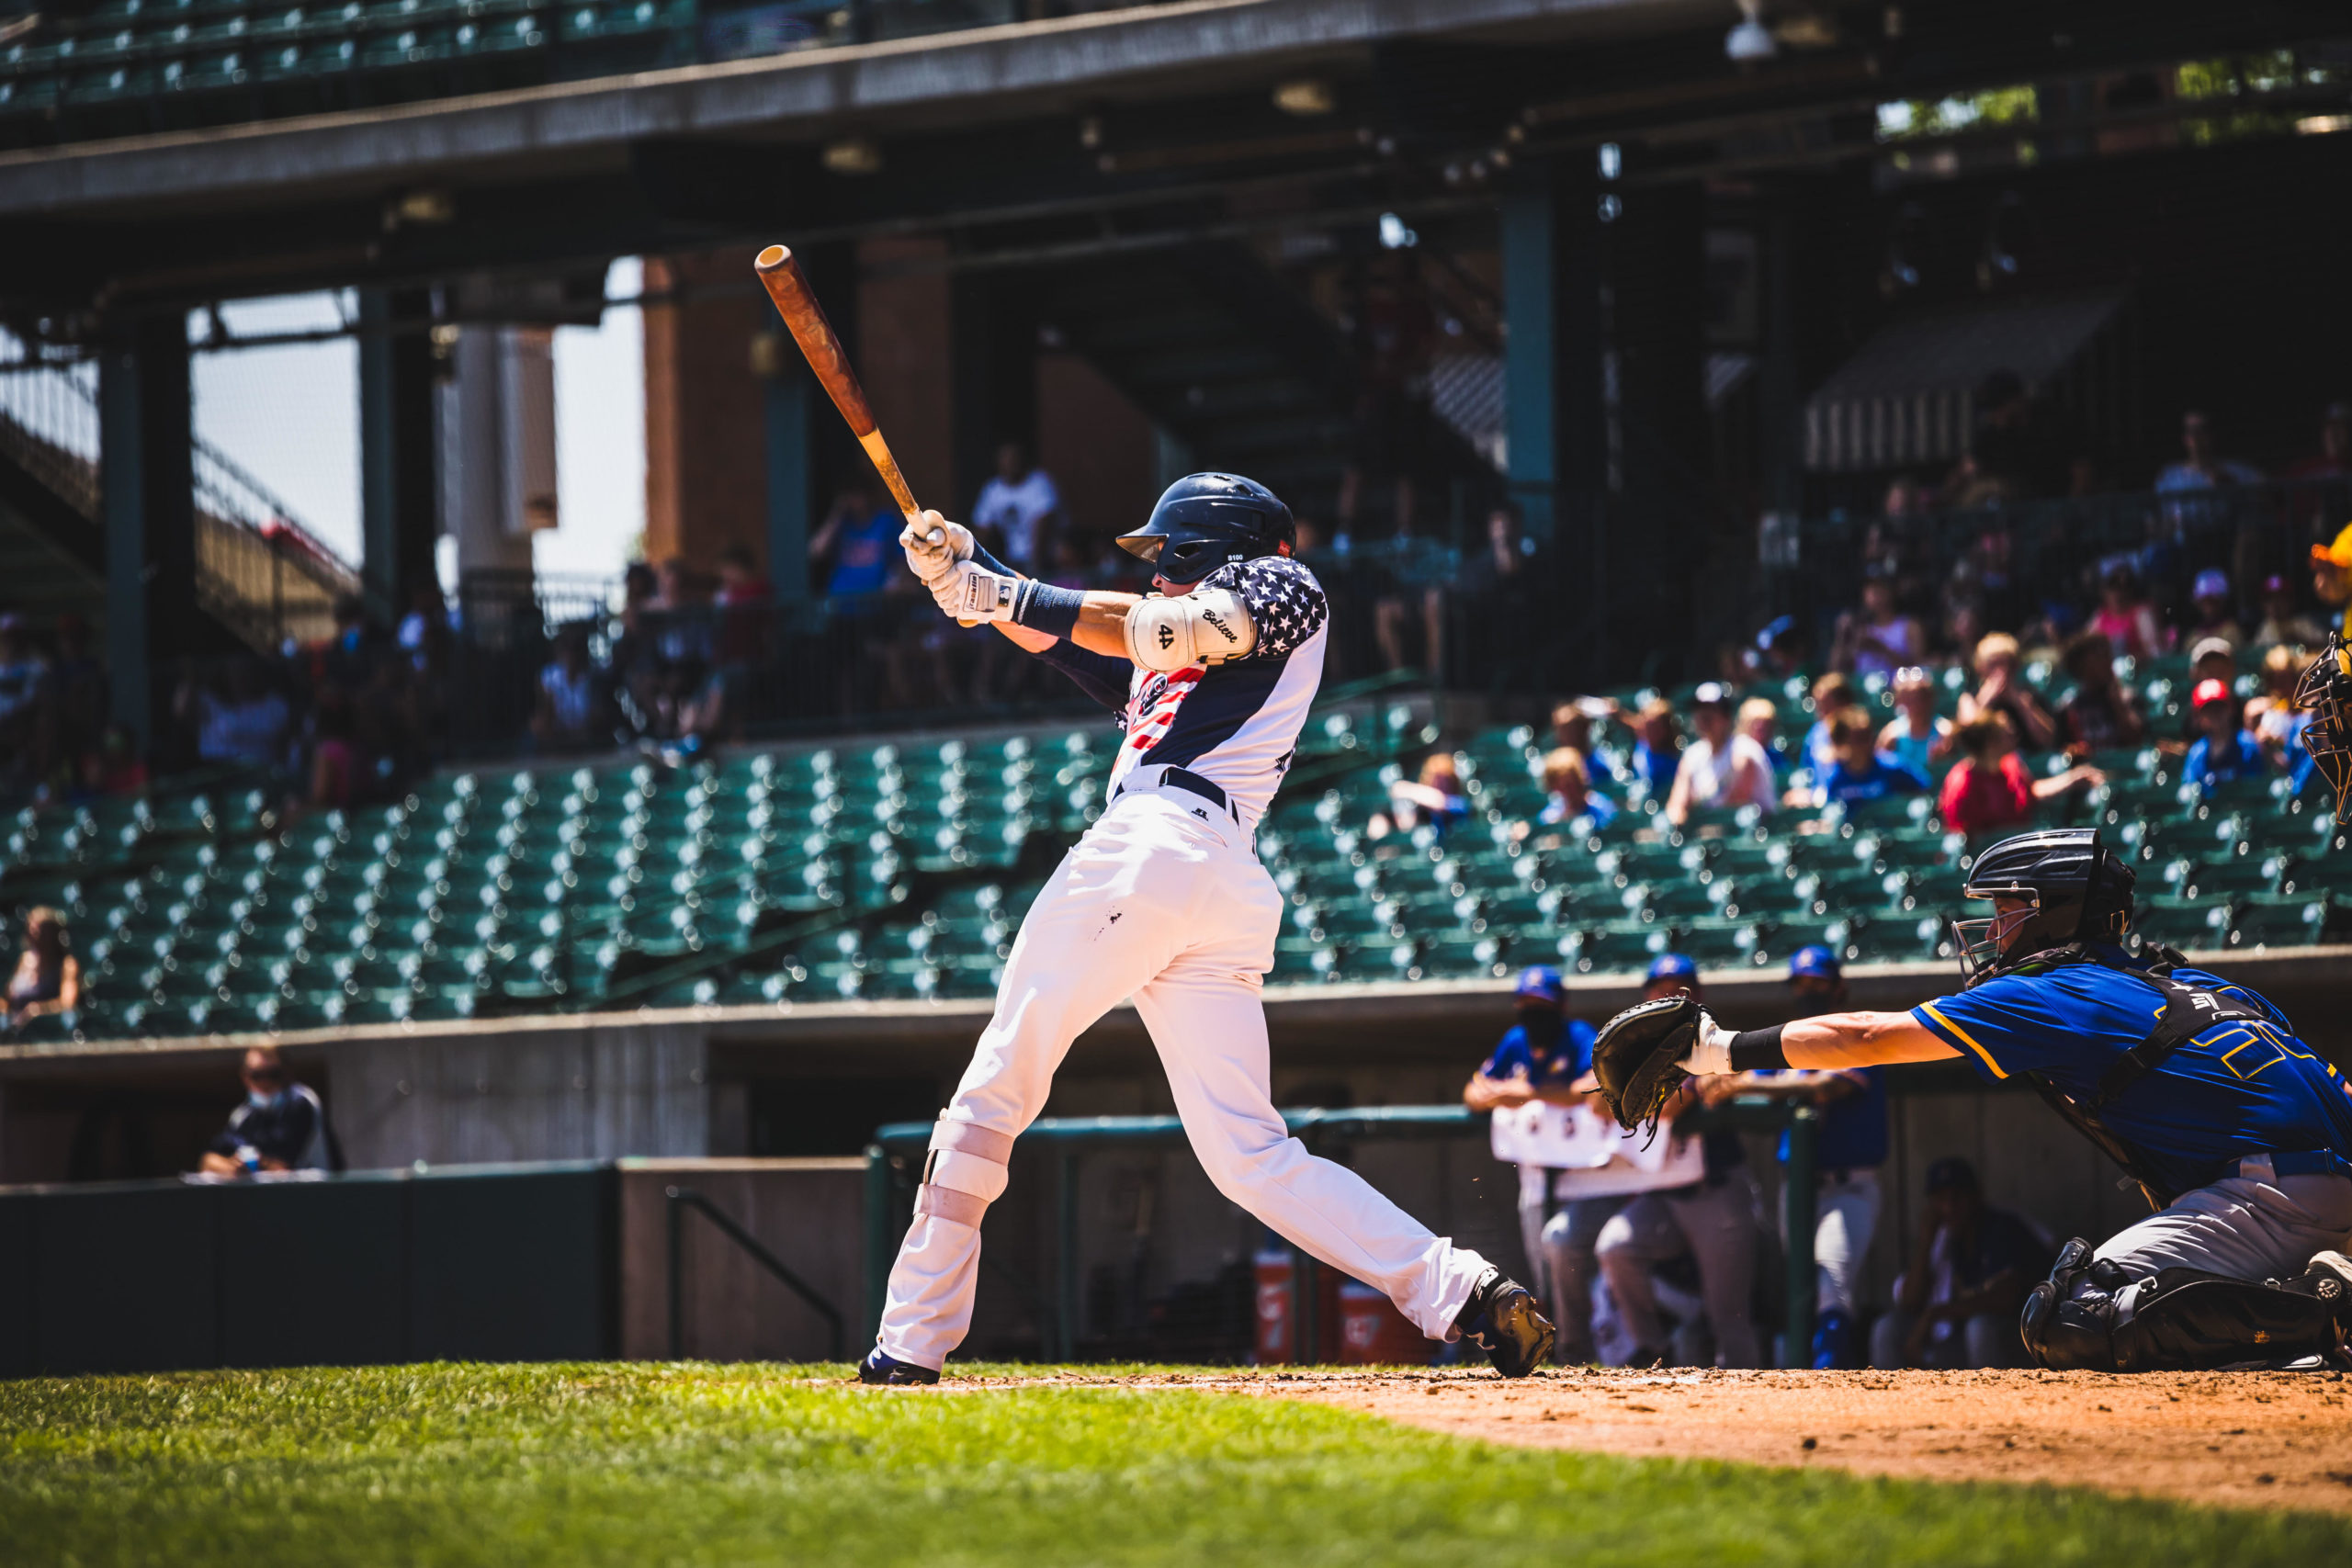 Lance Dazzles to Earn First Victory, Saltdogs Edge Apollos